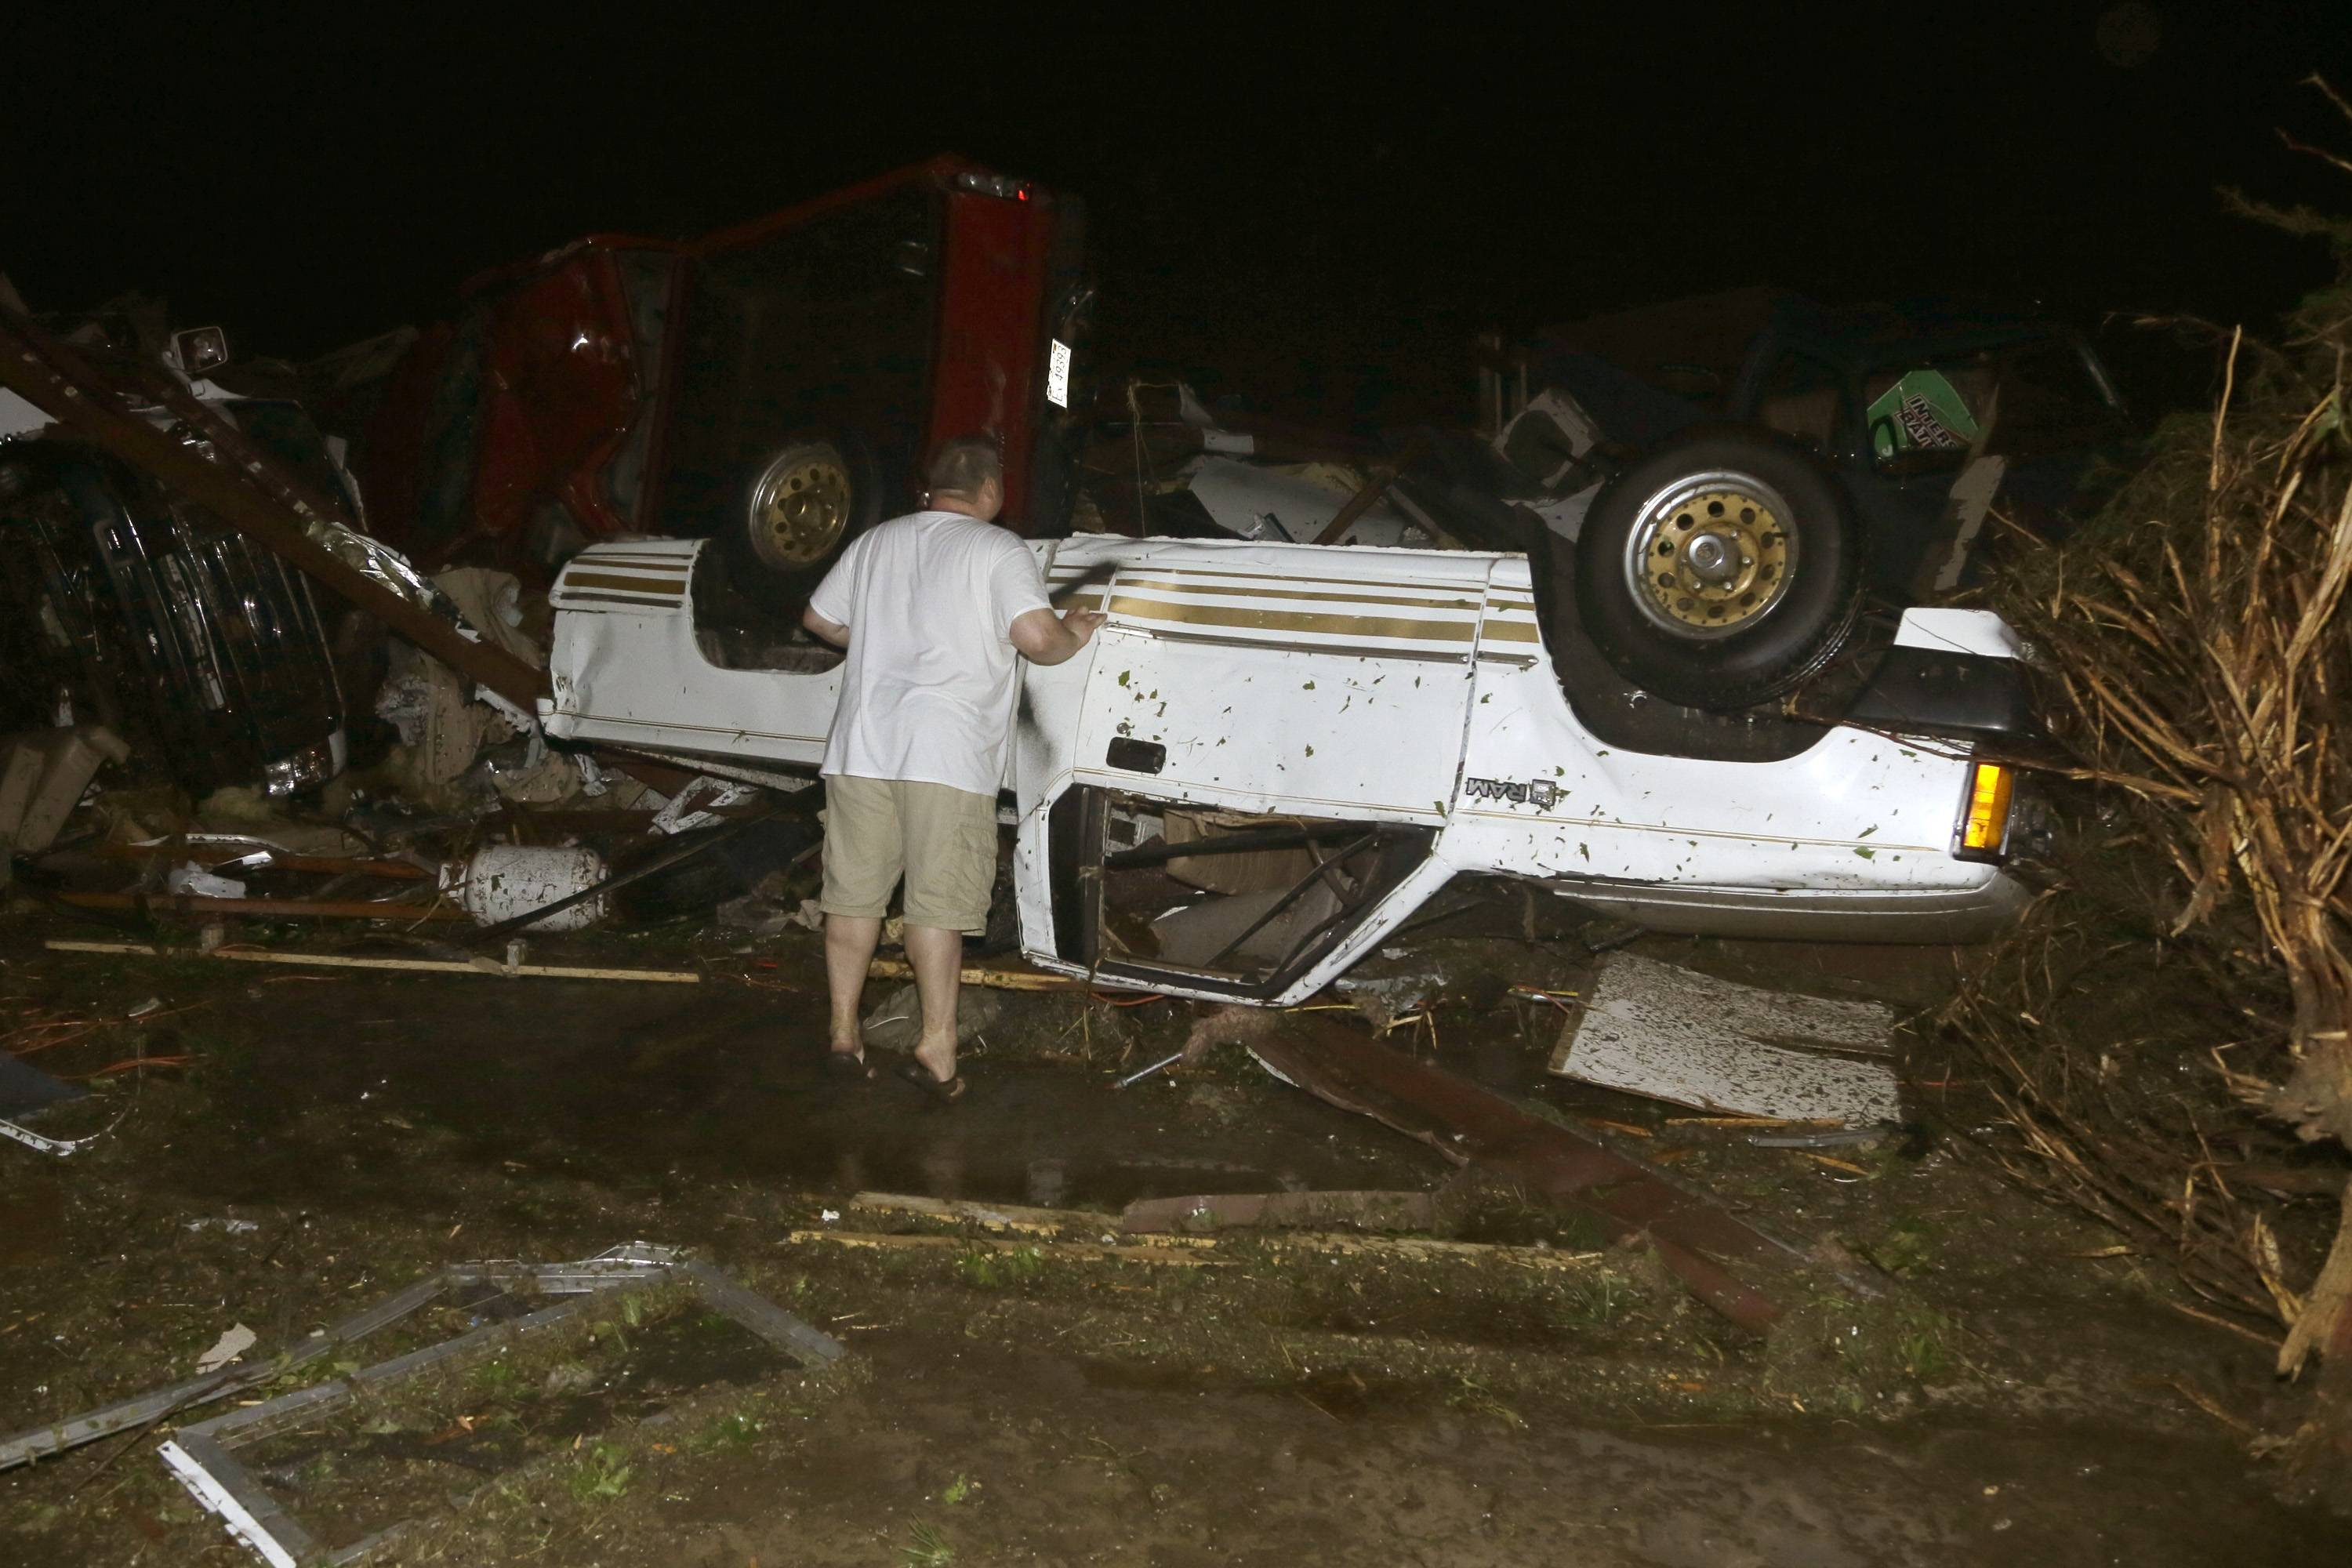 John Ward, an automobile and RV dealer, looks an tornado damage to one of his trucks in Mayflower, Ark., Sunday, April 27, 2014. A tornado struck the dealer's on lot Sunday.